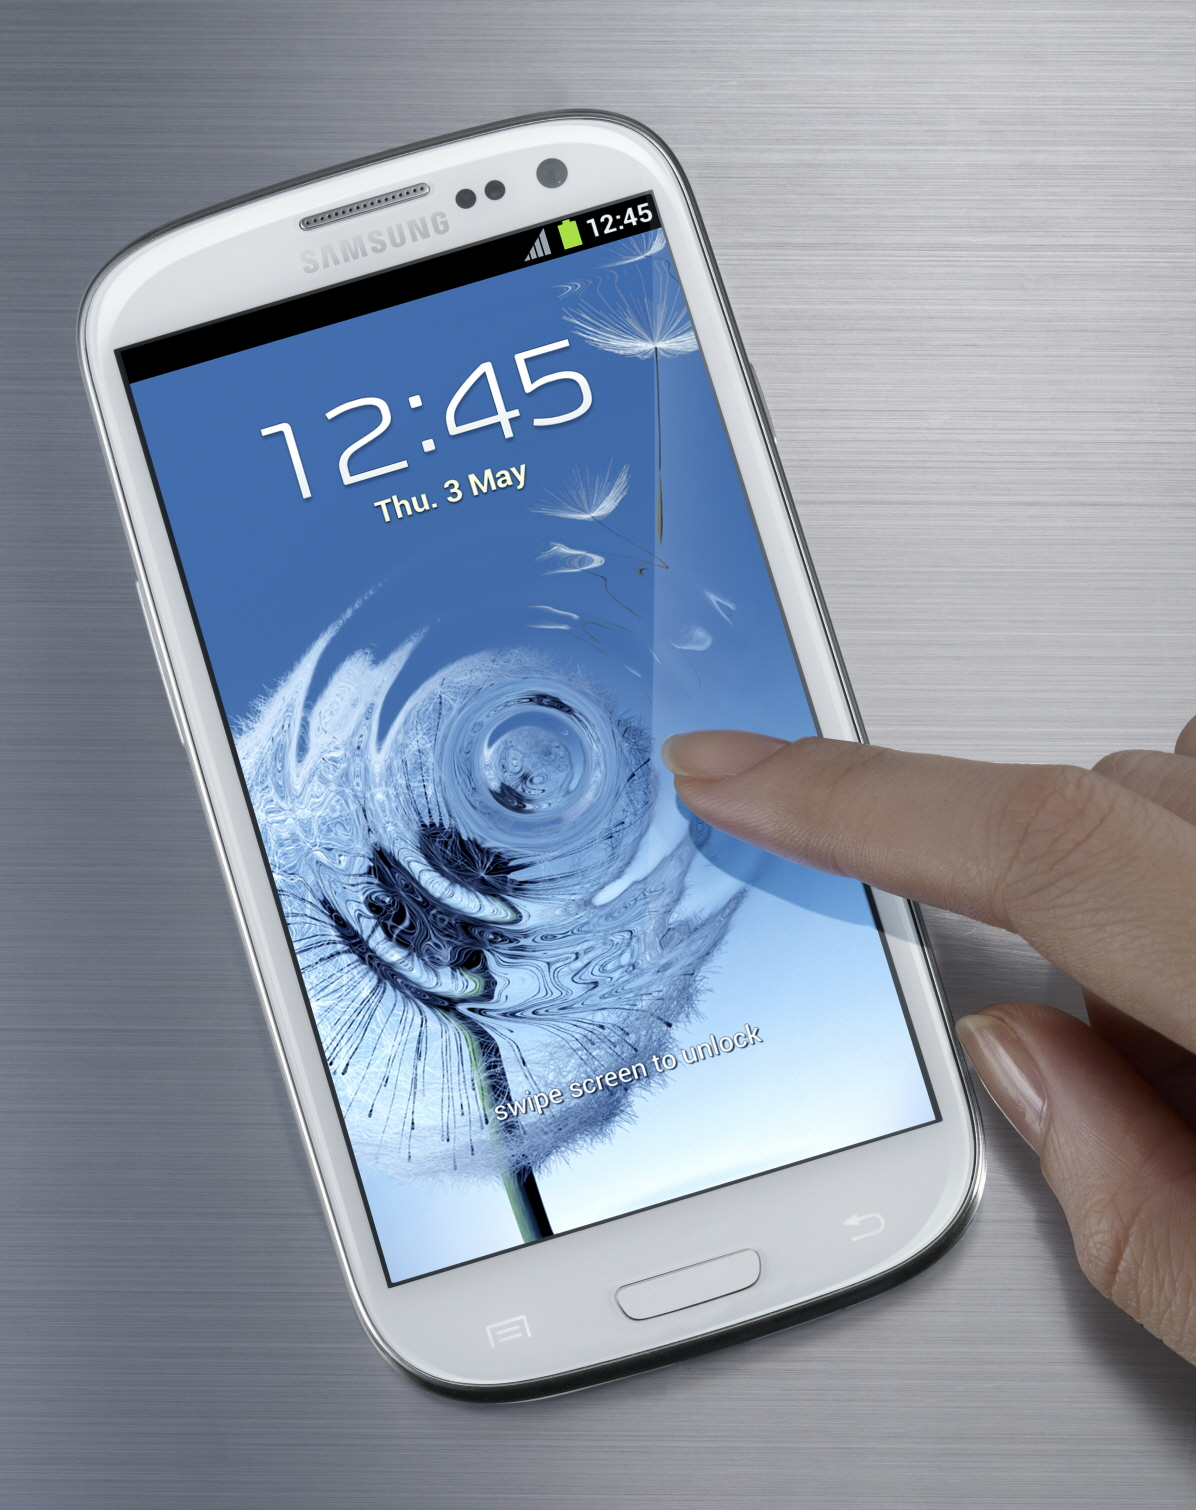 How To Bypass The Lockscreen Of The Samsung Galaxy S III